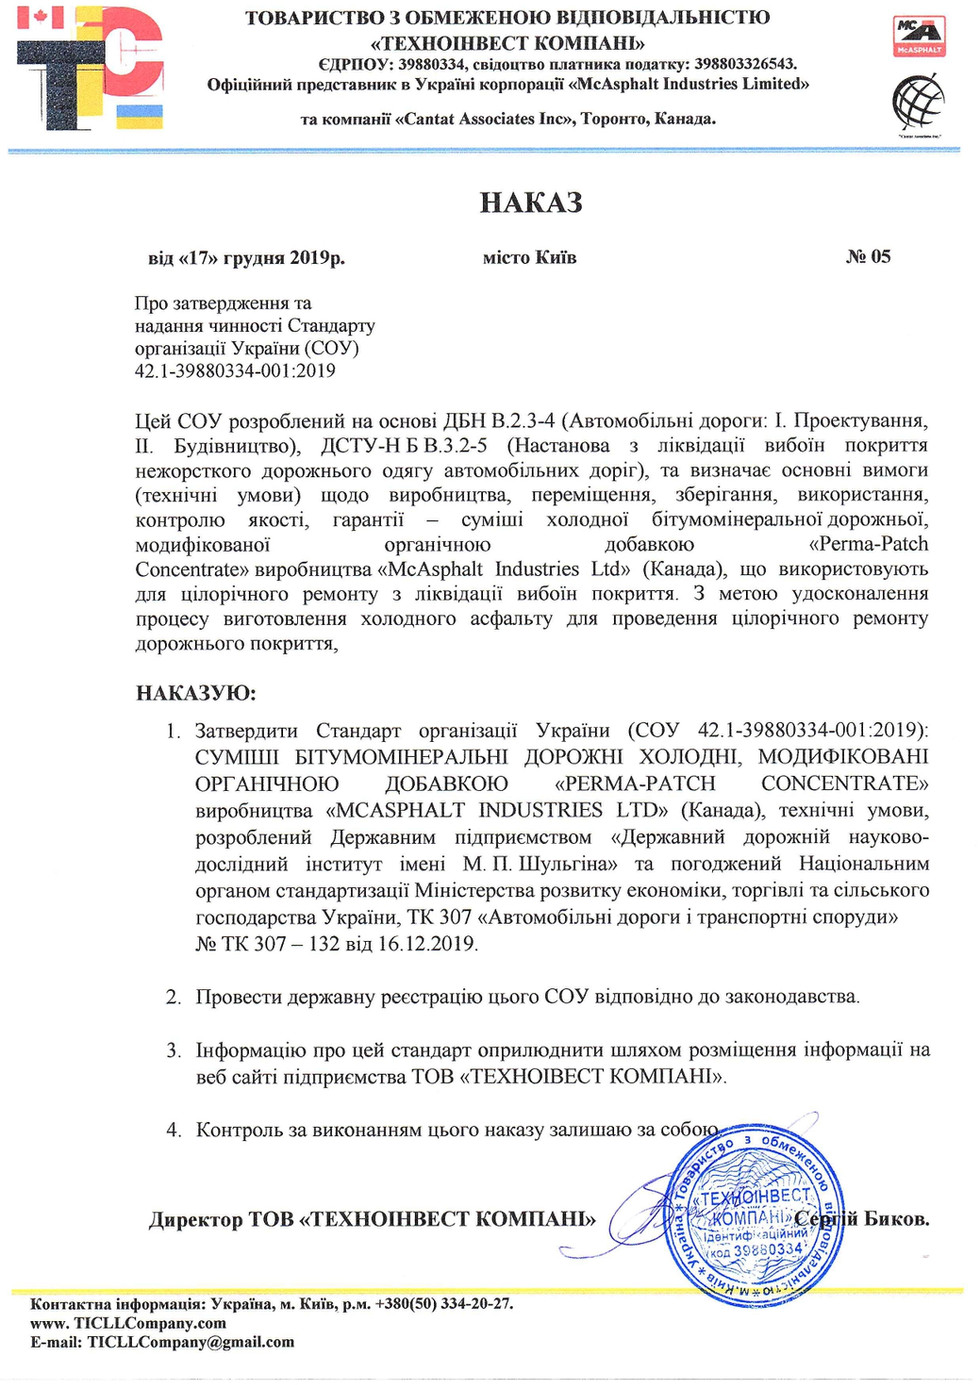 0049_НАКАЗ СОУ._pages-to-jpg-0001.jpg